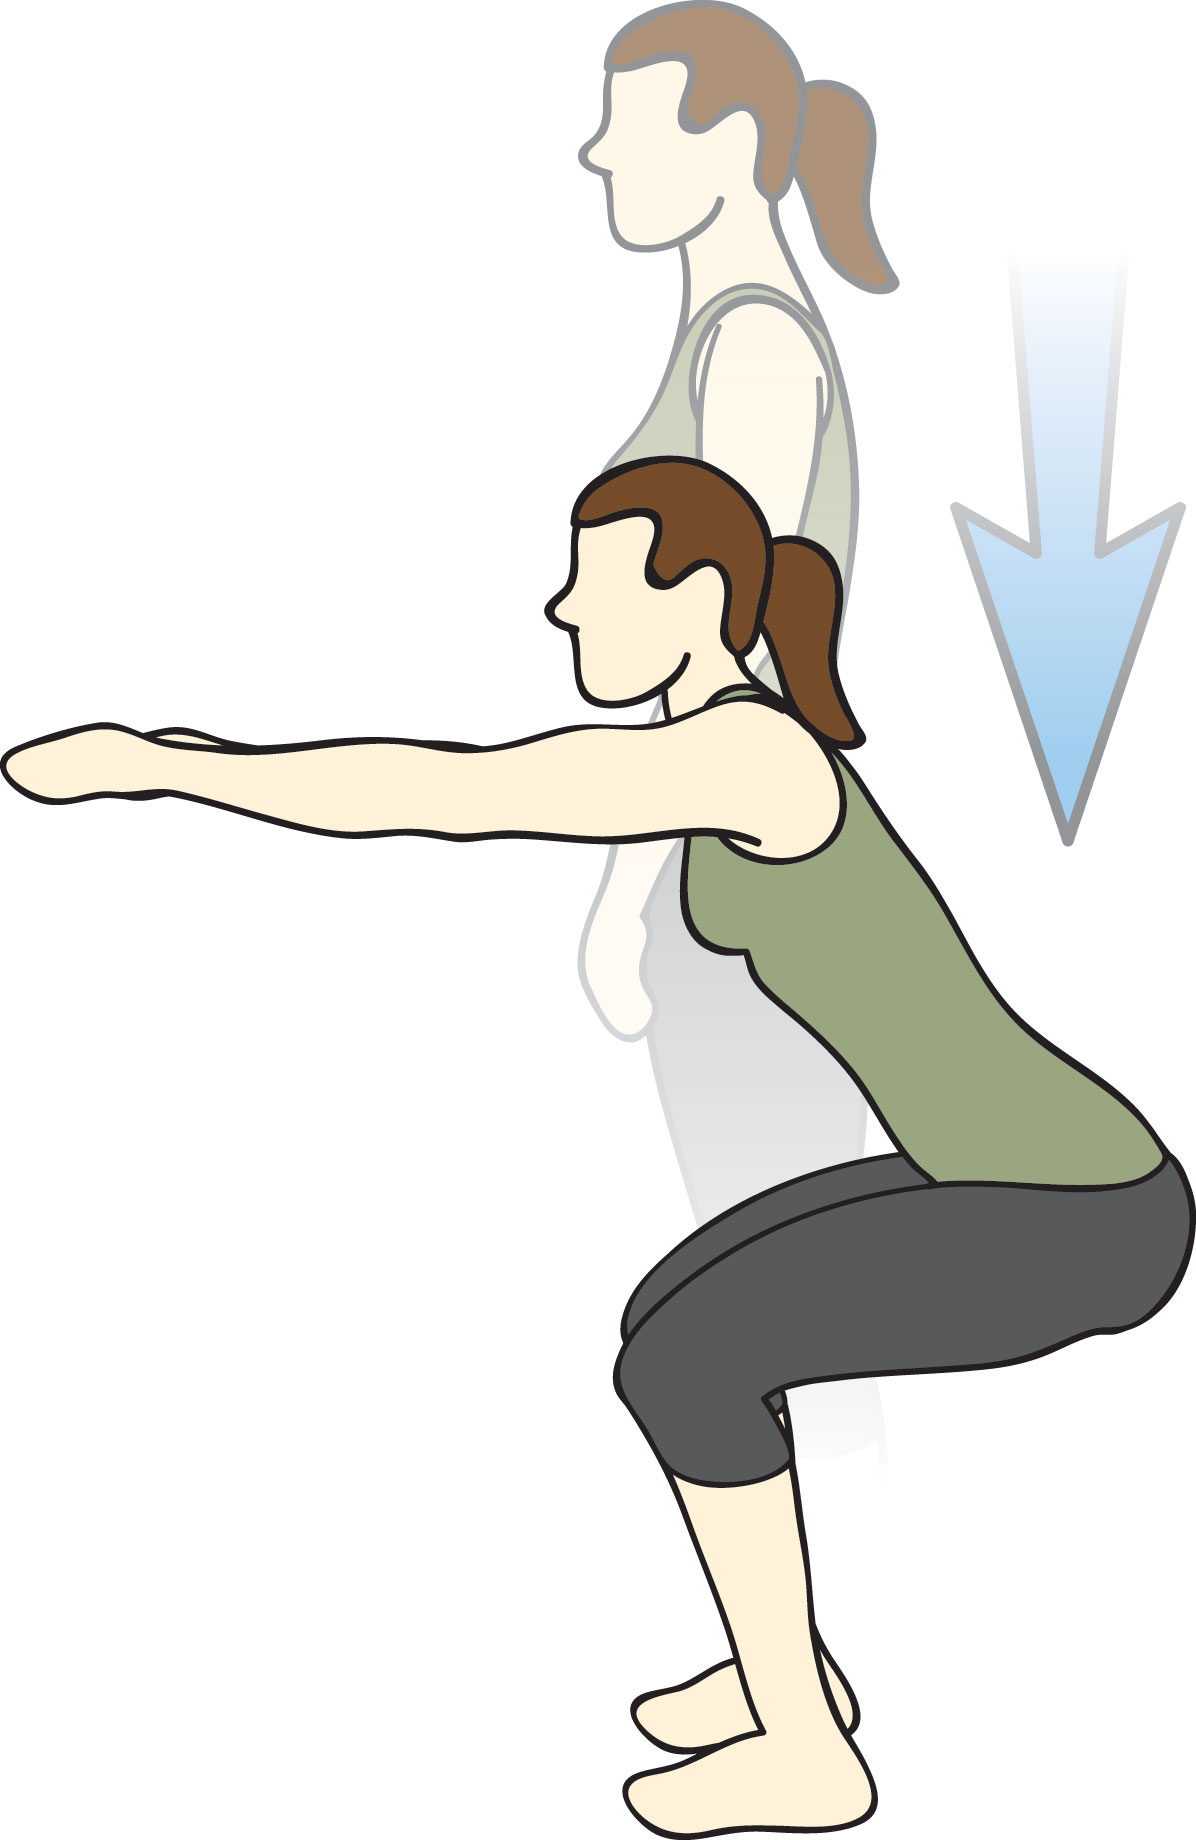 gym-mistakes-air-squats